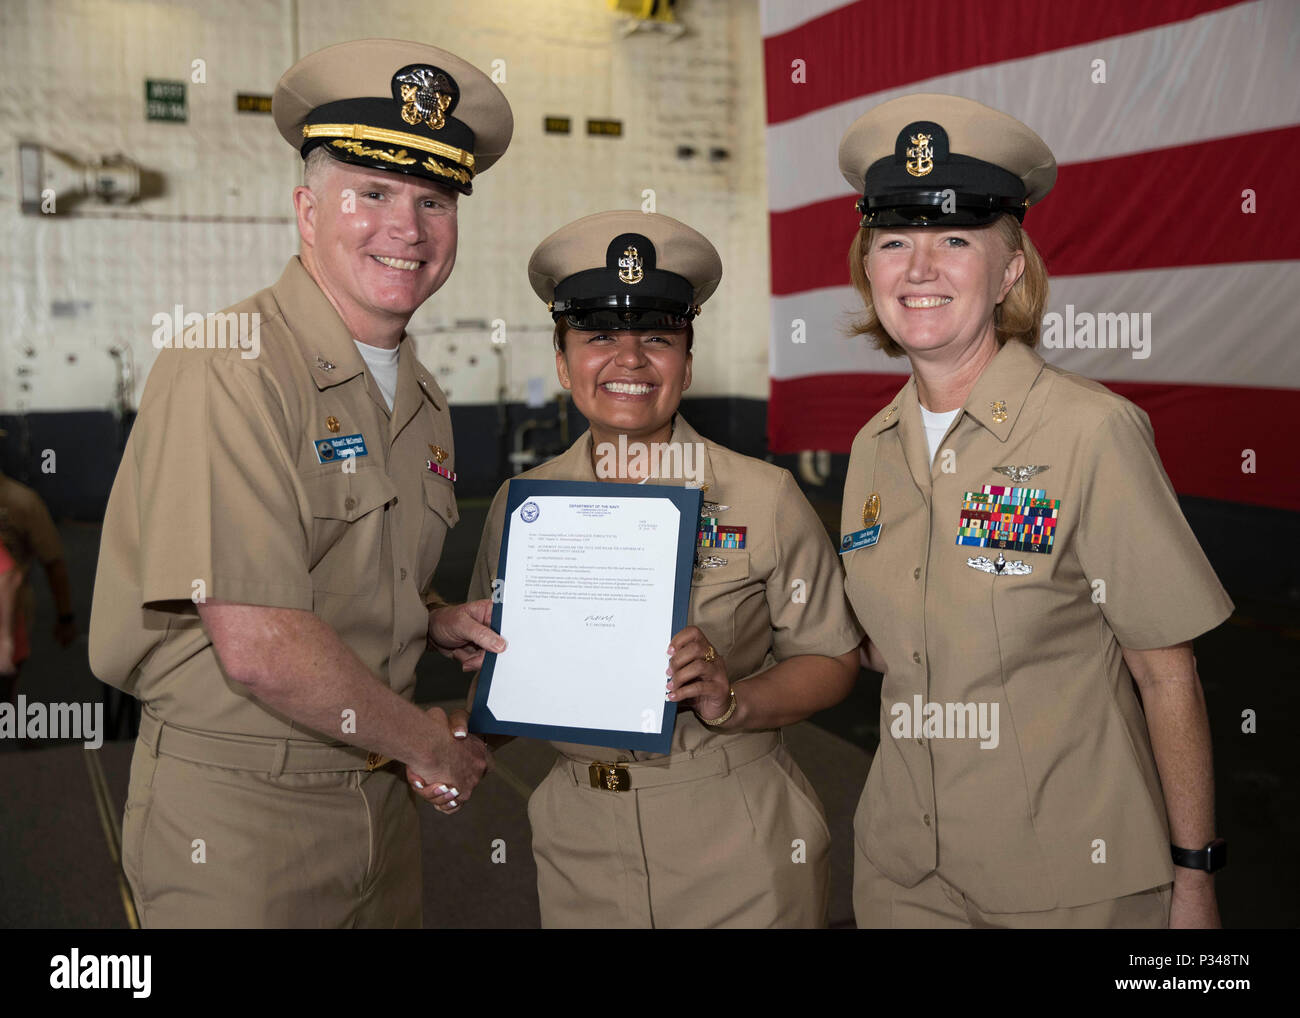 NORFOLK, Va. (June 12, 2018) -- Senior Chief Ship's Serviceman Angela Zamora, from Jersey City, New Jersey, assigned to USS Gerald R. Ford's (CVN 78) supply department, receives her frocking letter from Capt. Richard McCormack, Ford's commanding officer, and Command Master Chief Laura Nunley, Ford's command master chief, during a senior chief petty officer pinning ceremony in the ship's hangar bay. Ford had 14 chief petty officers selected to the rank of senior chief petty officer. (U.S. Navy photo by Mass Communication Specialist 3rd Class Ryan Carter) - Stock Image